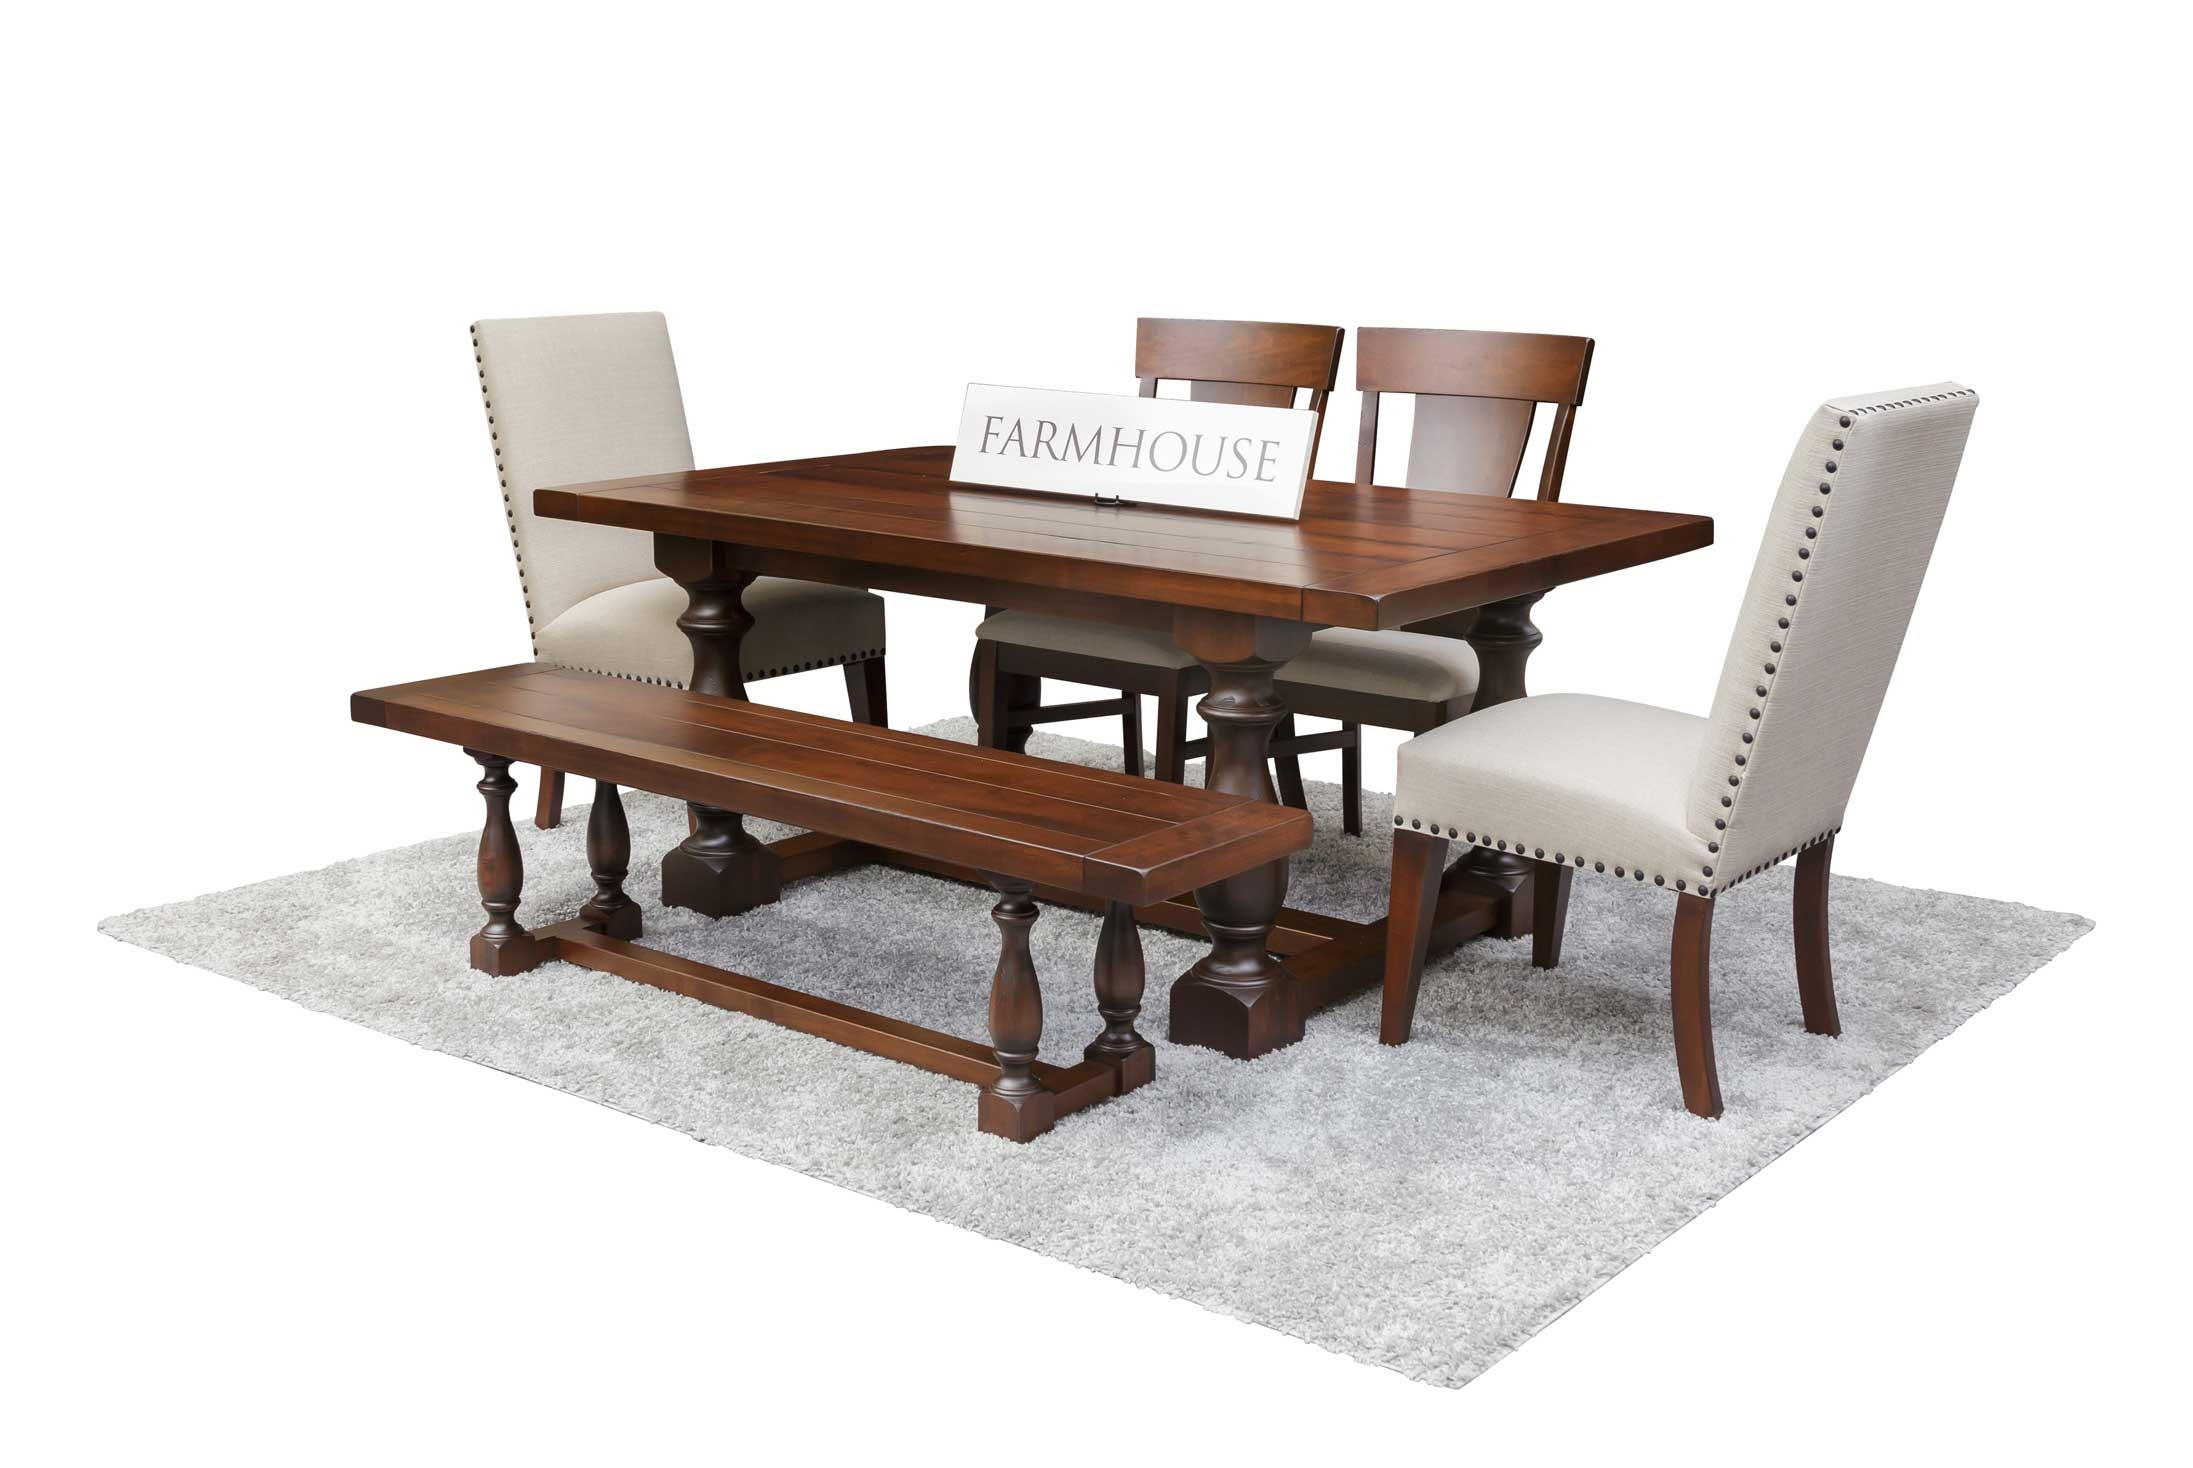 Stupendous Amish Made Dining Room Furniture Lancaster County Pa Download Free Architecture Designs Scobabritishbridgeorg